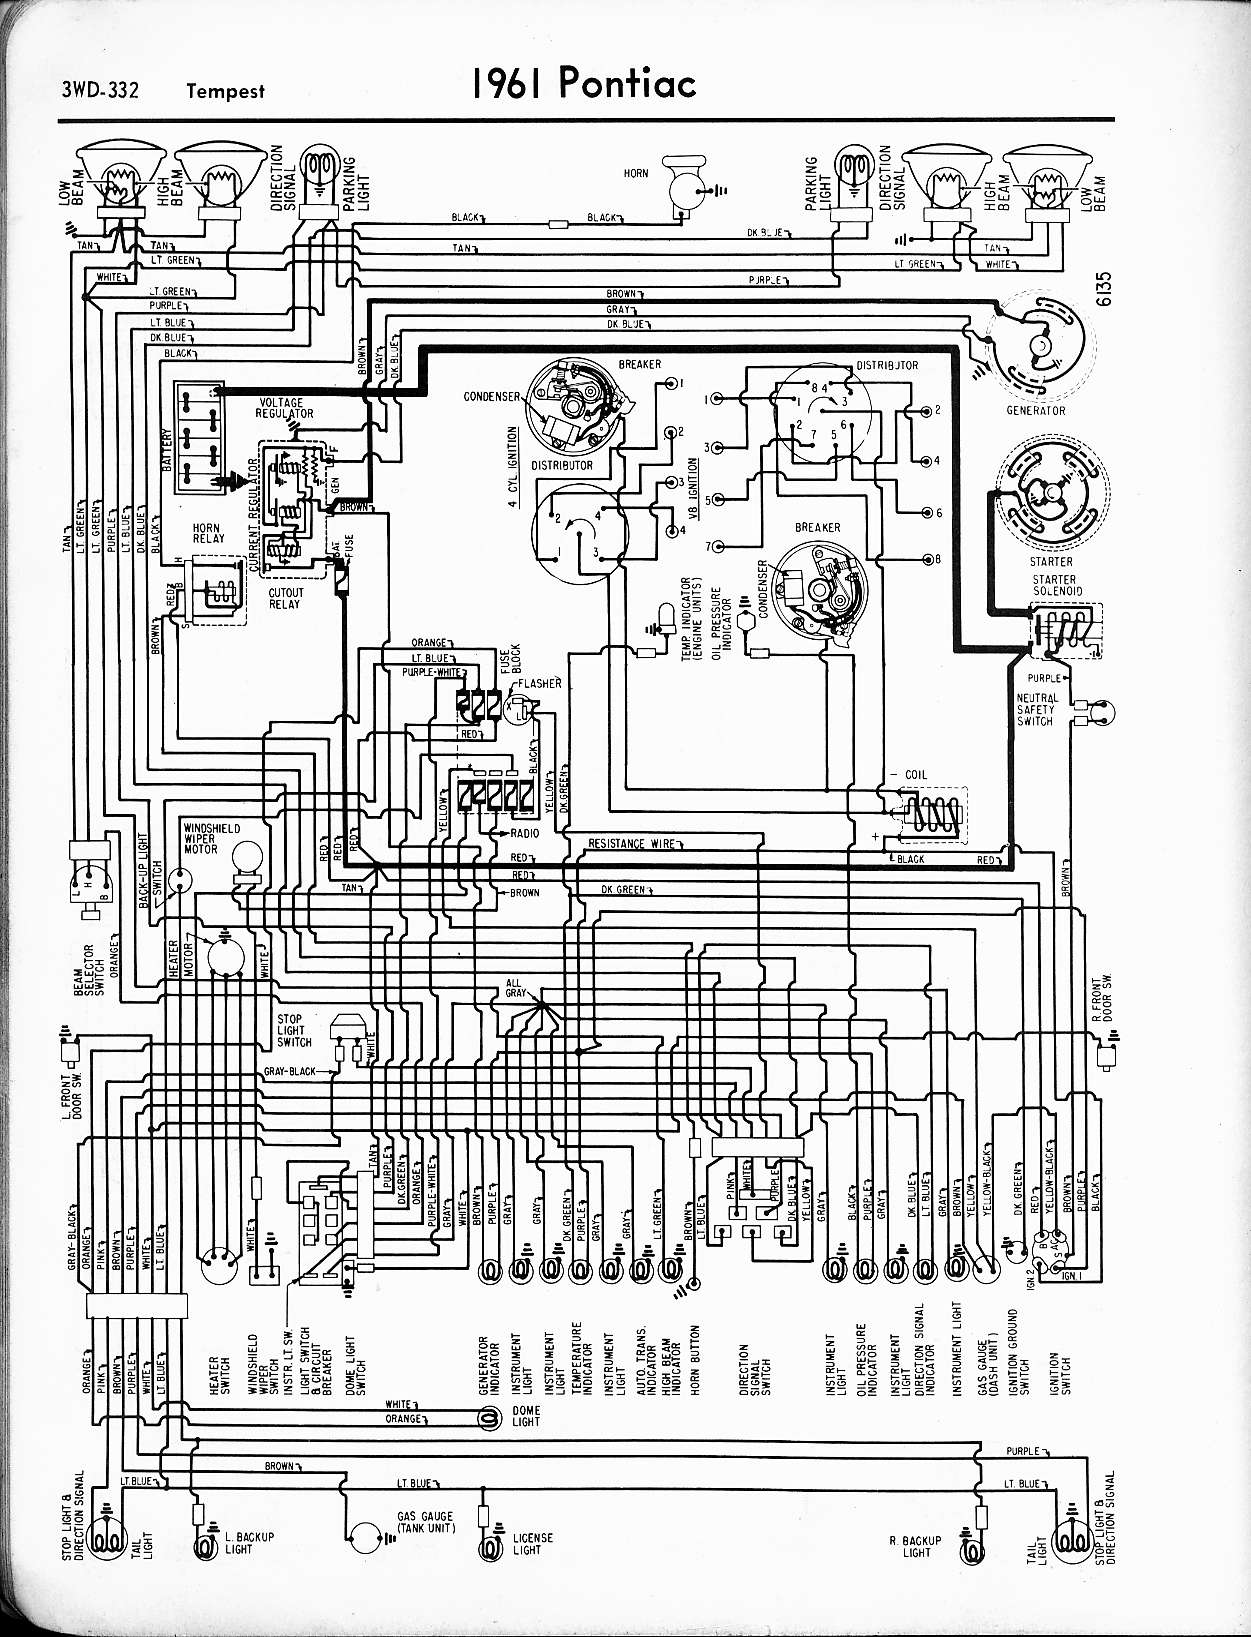 MWire5765 332 68 bonneville wiring diagram 100 images 1965 pontiac wiring 1968 triumph bonneville wiring harness at edmiracle.co